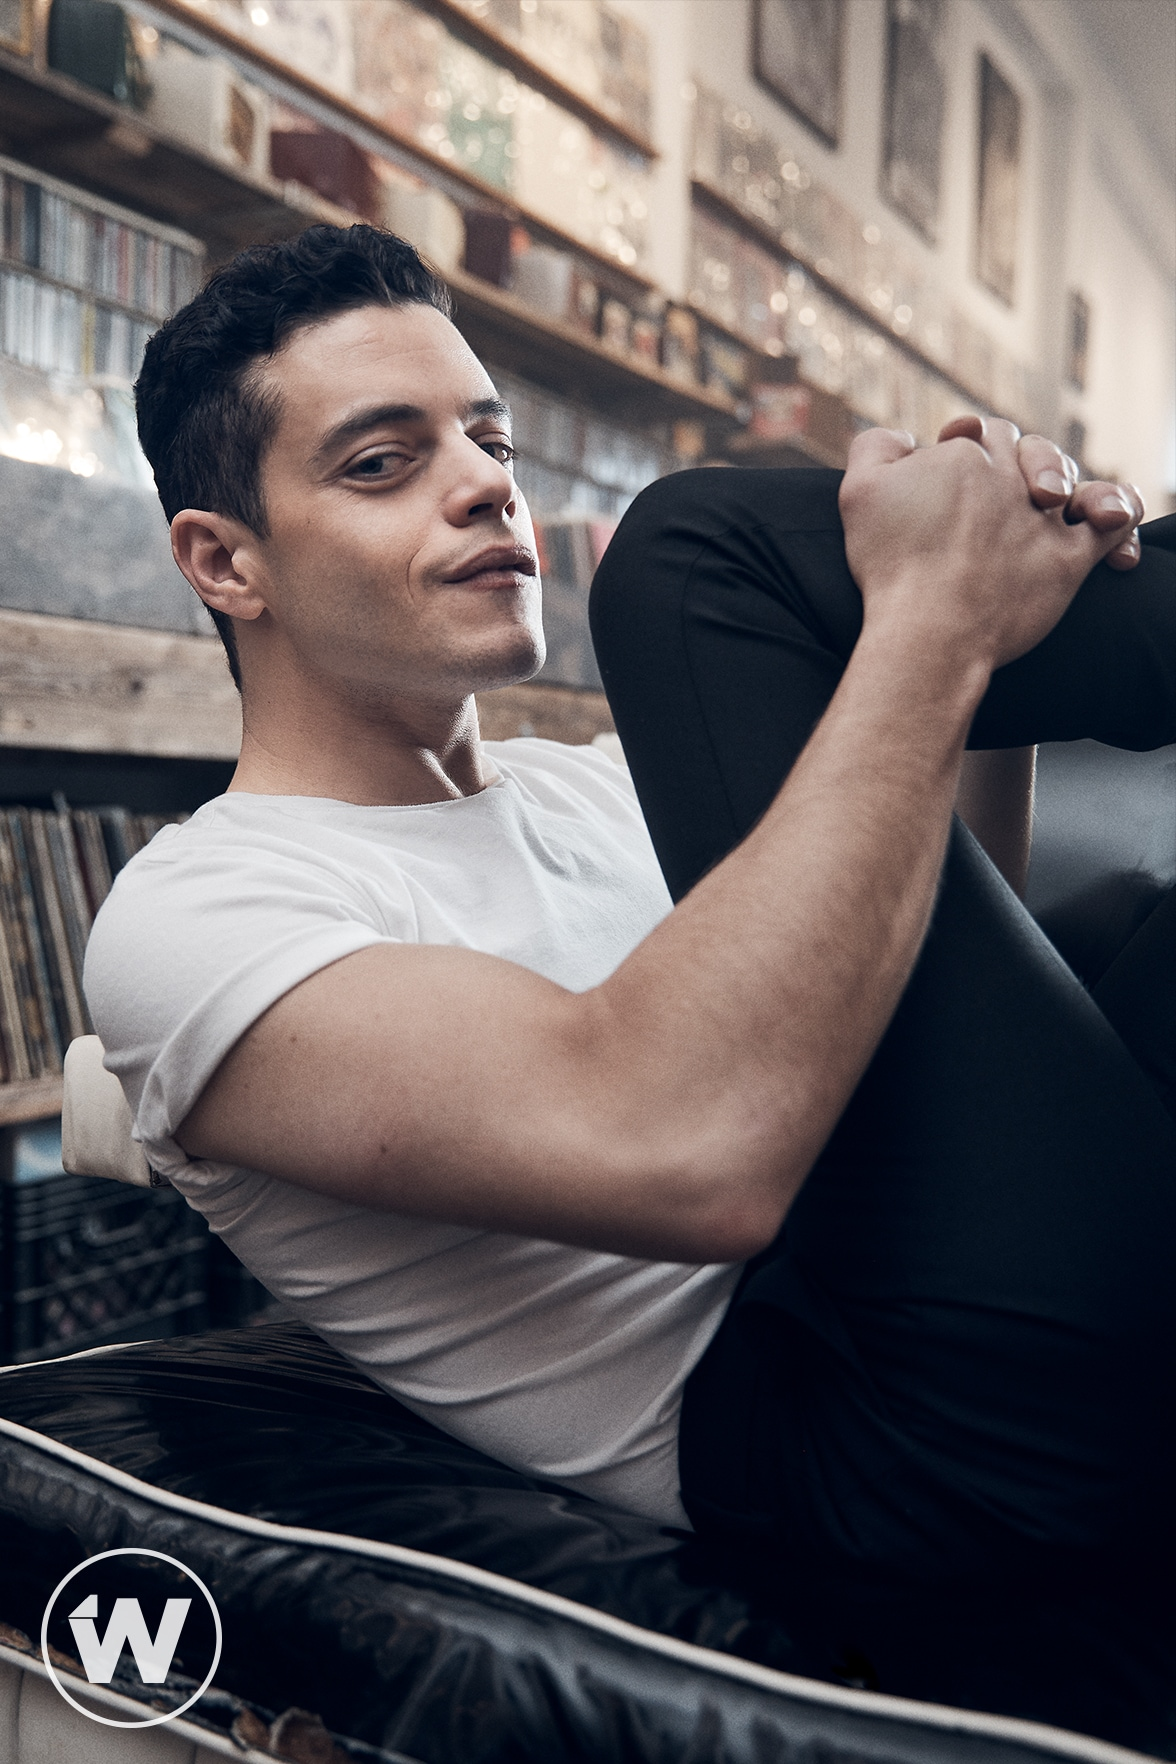 Amanda Mackay Nude bohemian rhapsody' star rami malek portraits (exclusive photos)